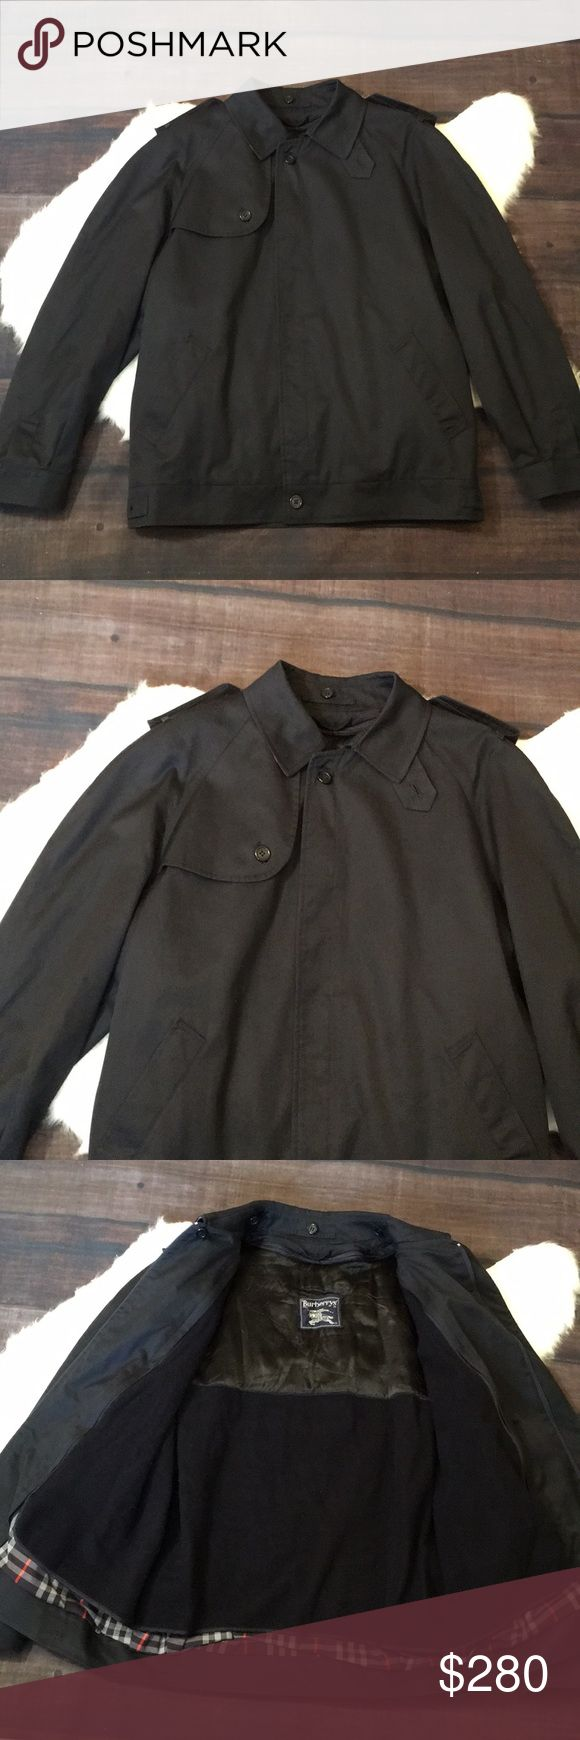 Burberry bomber style jacket Excellent condition 9/10  It is a dark navy blue/black color Burberry Jackets & Coats